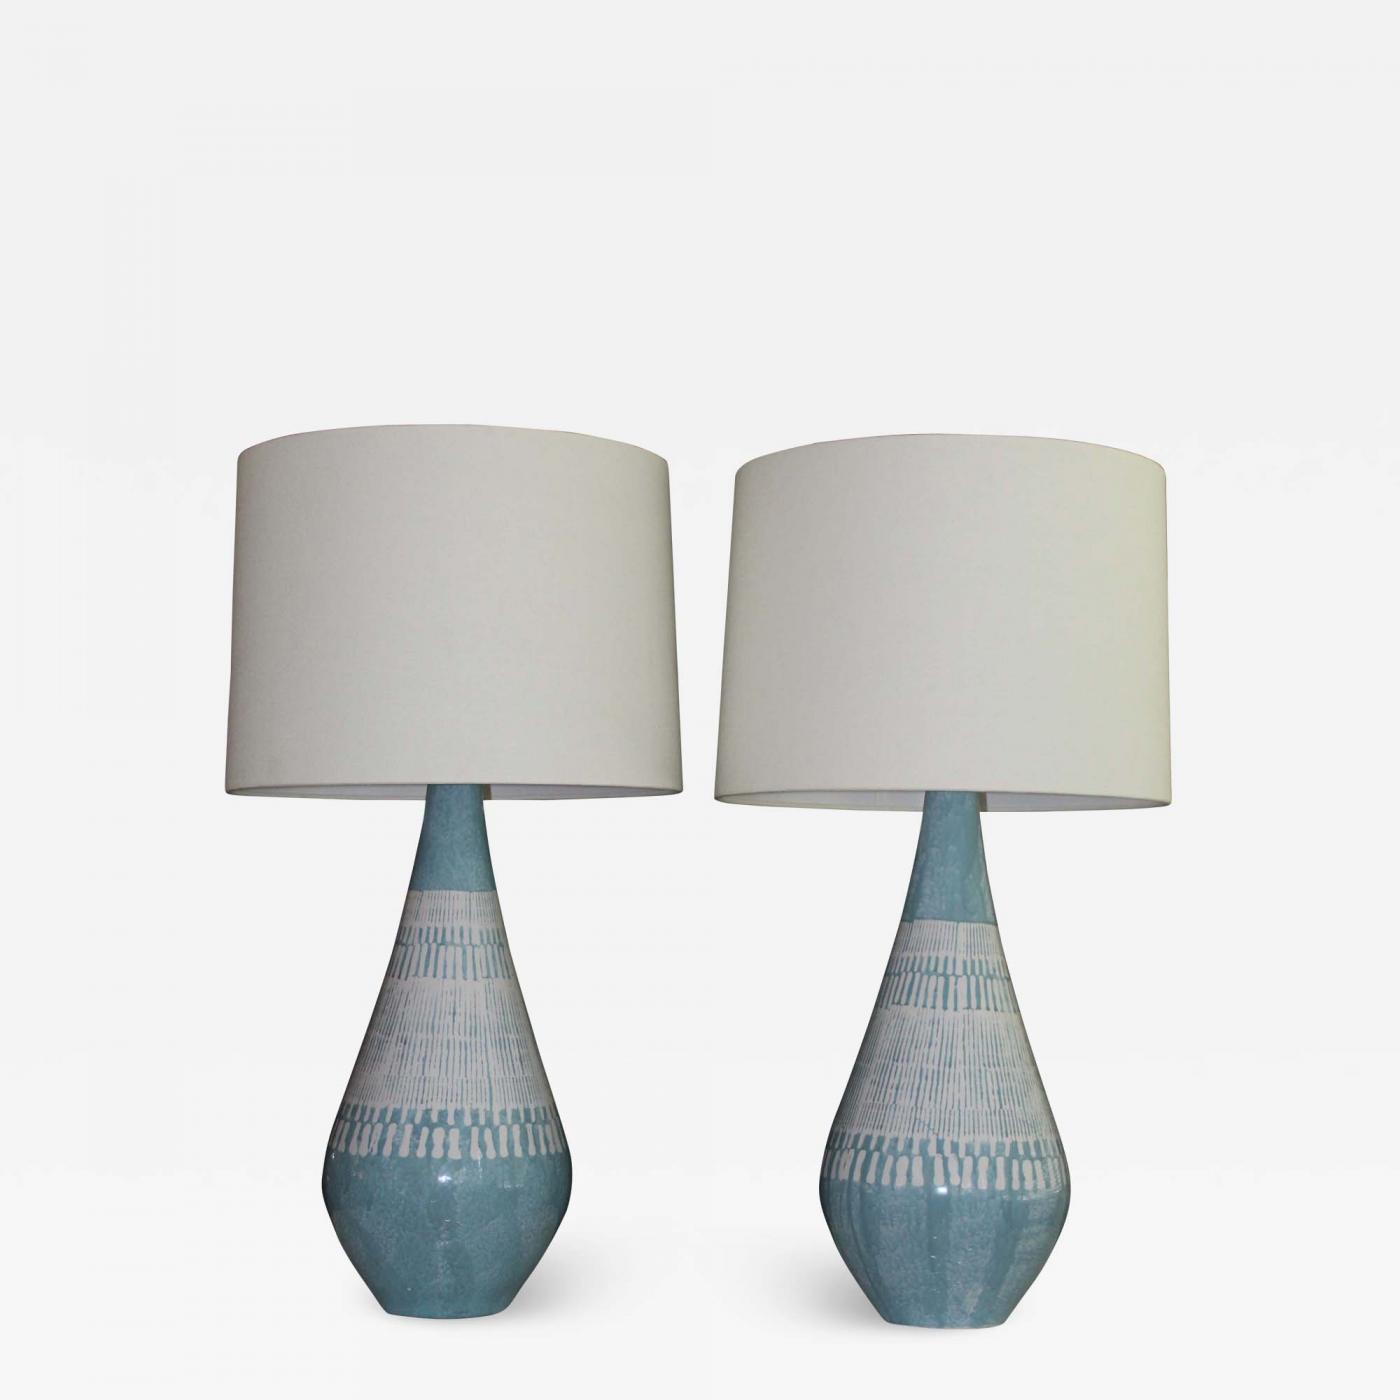 Bitossi Style Mid Century Modern Table Lamps With Embossed Ceramic Base